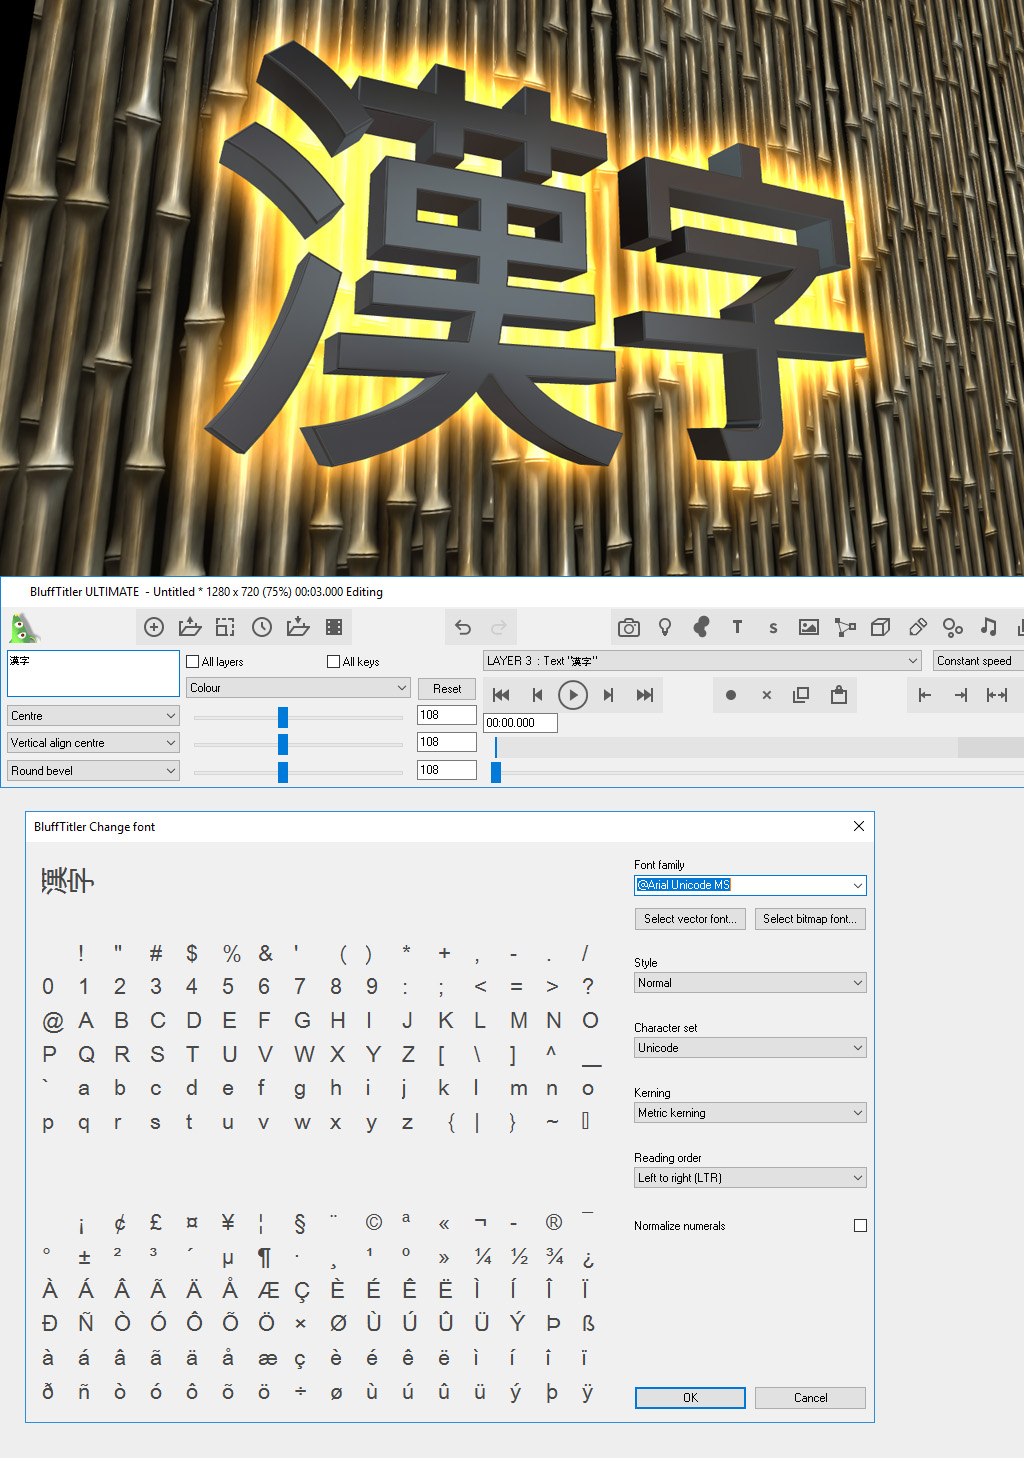 How to use Japanese Kanji in BluffTitler | BluffTitler Community